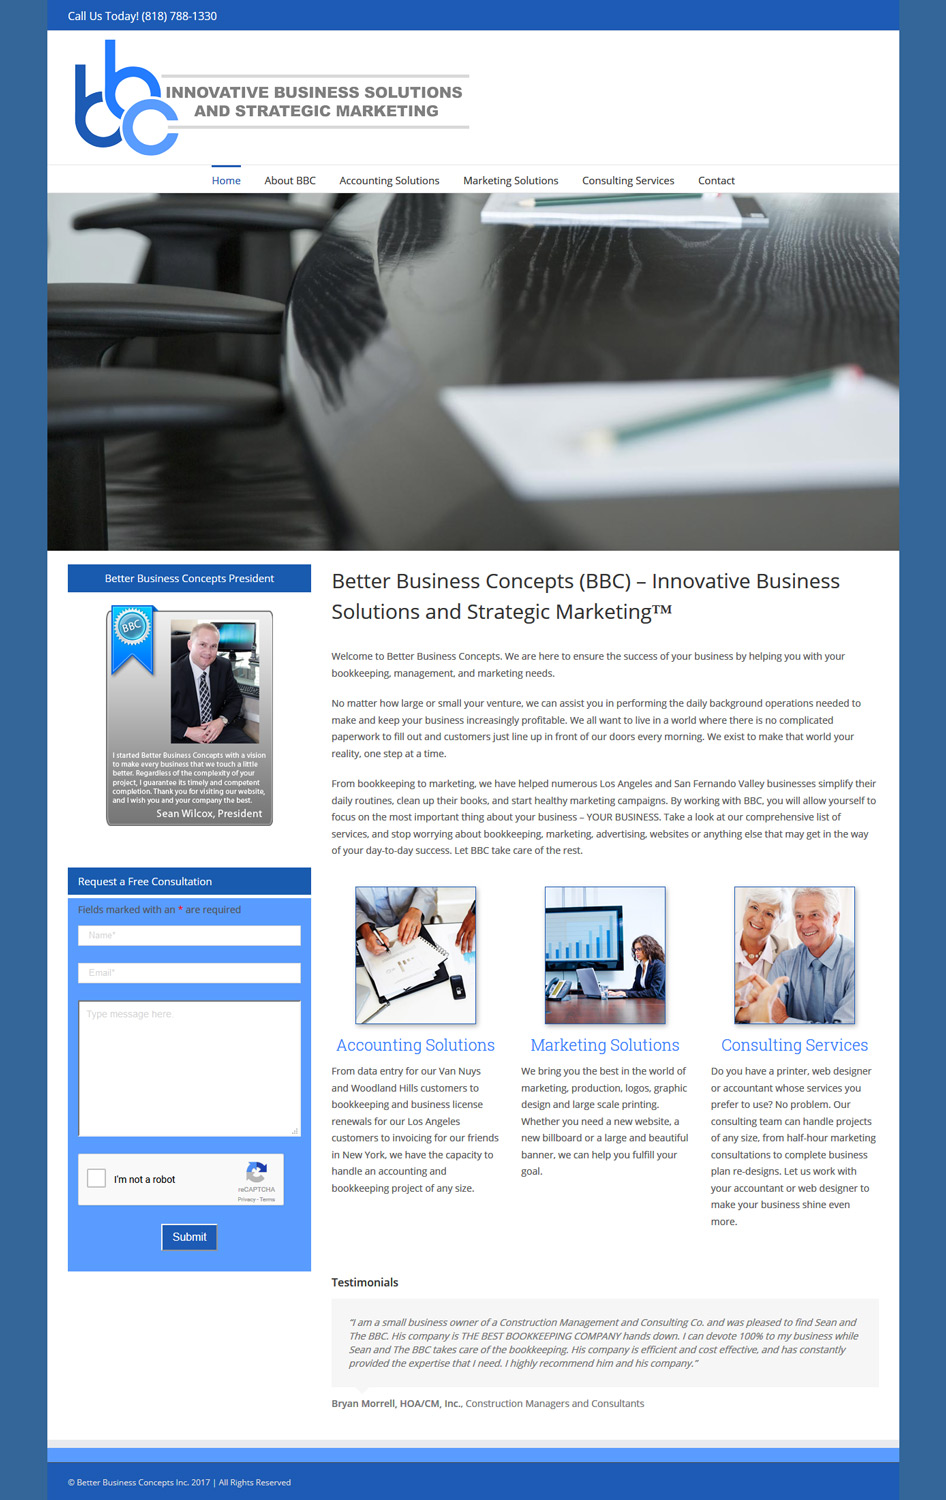 Better Business Concepts website homepage